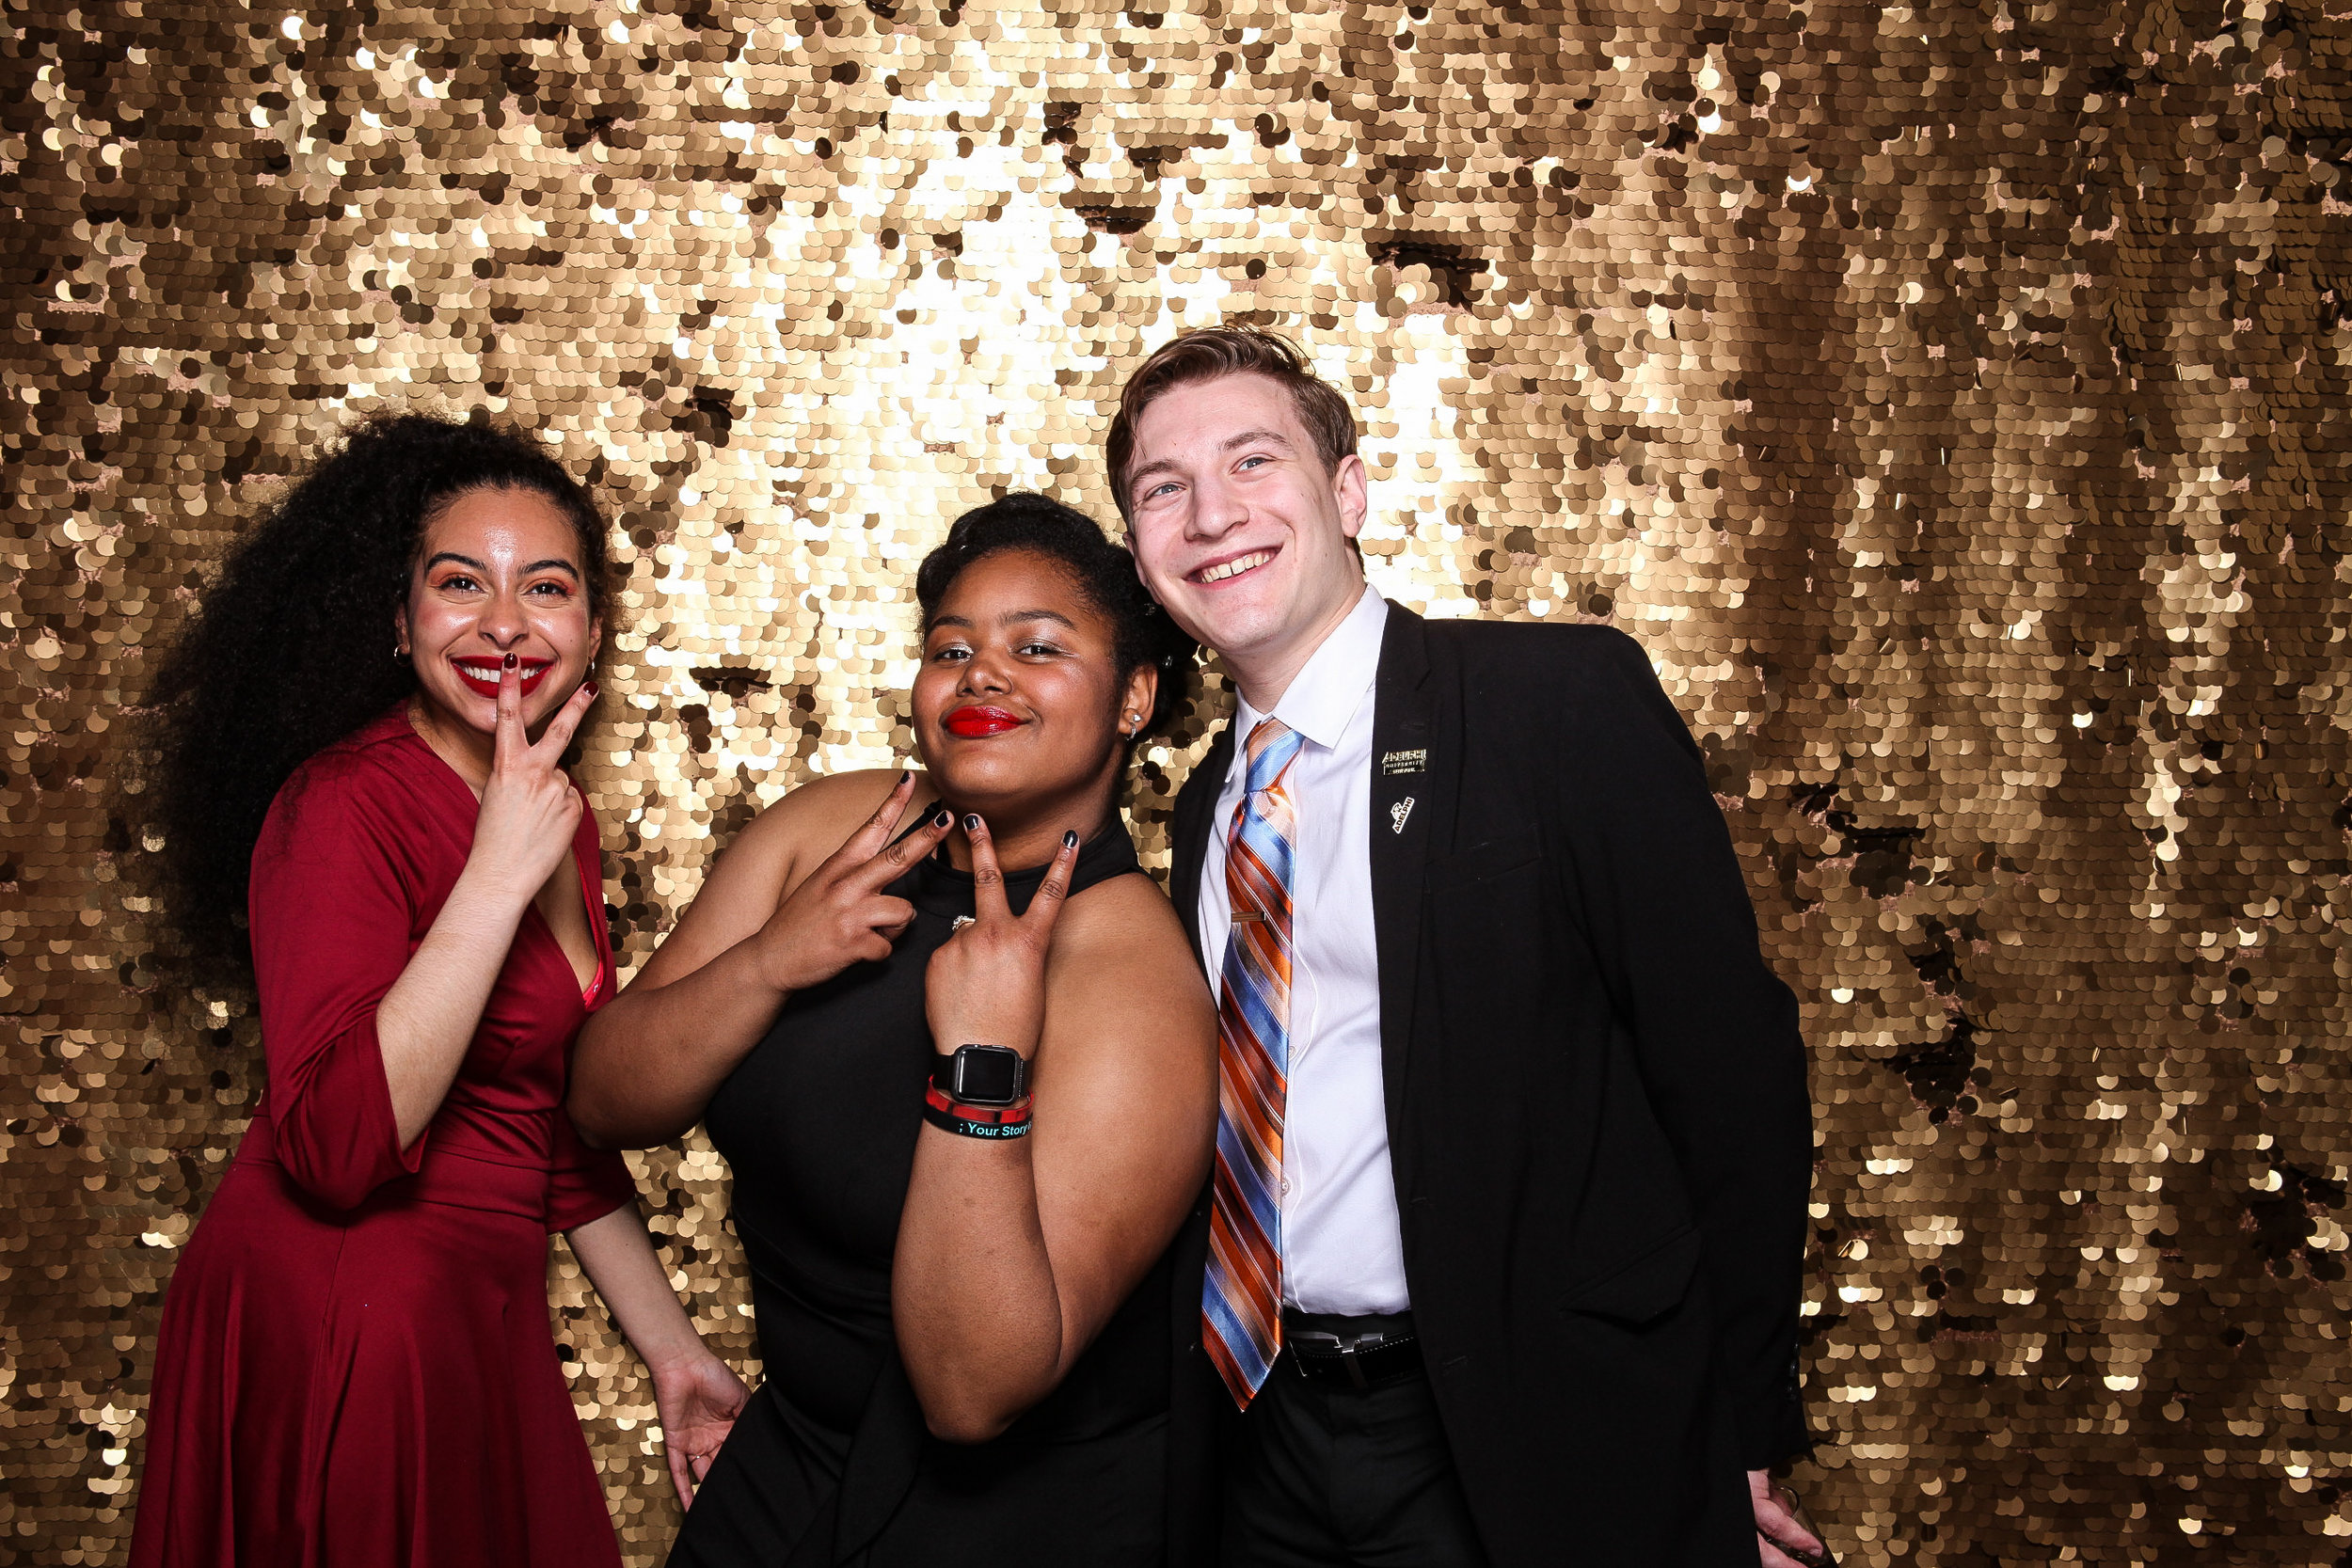 20190503_Adelphi_Senior_Formal-397.jpg